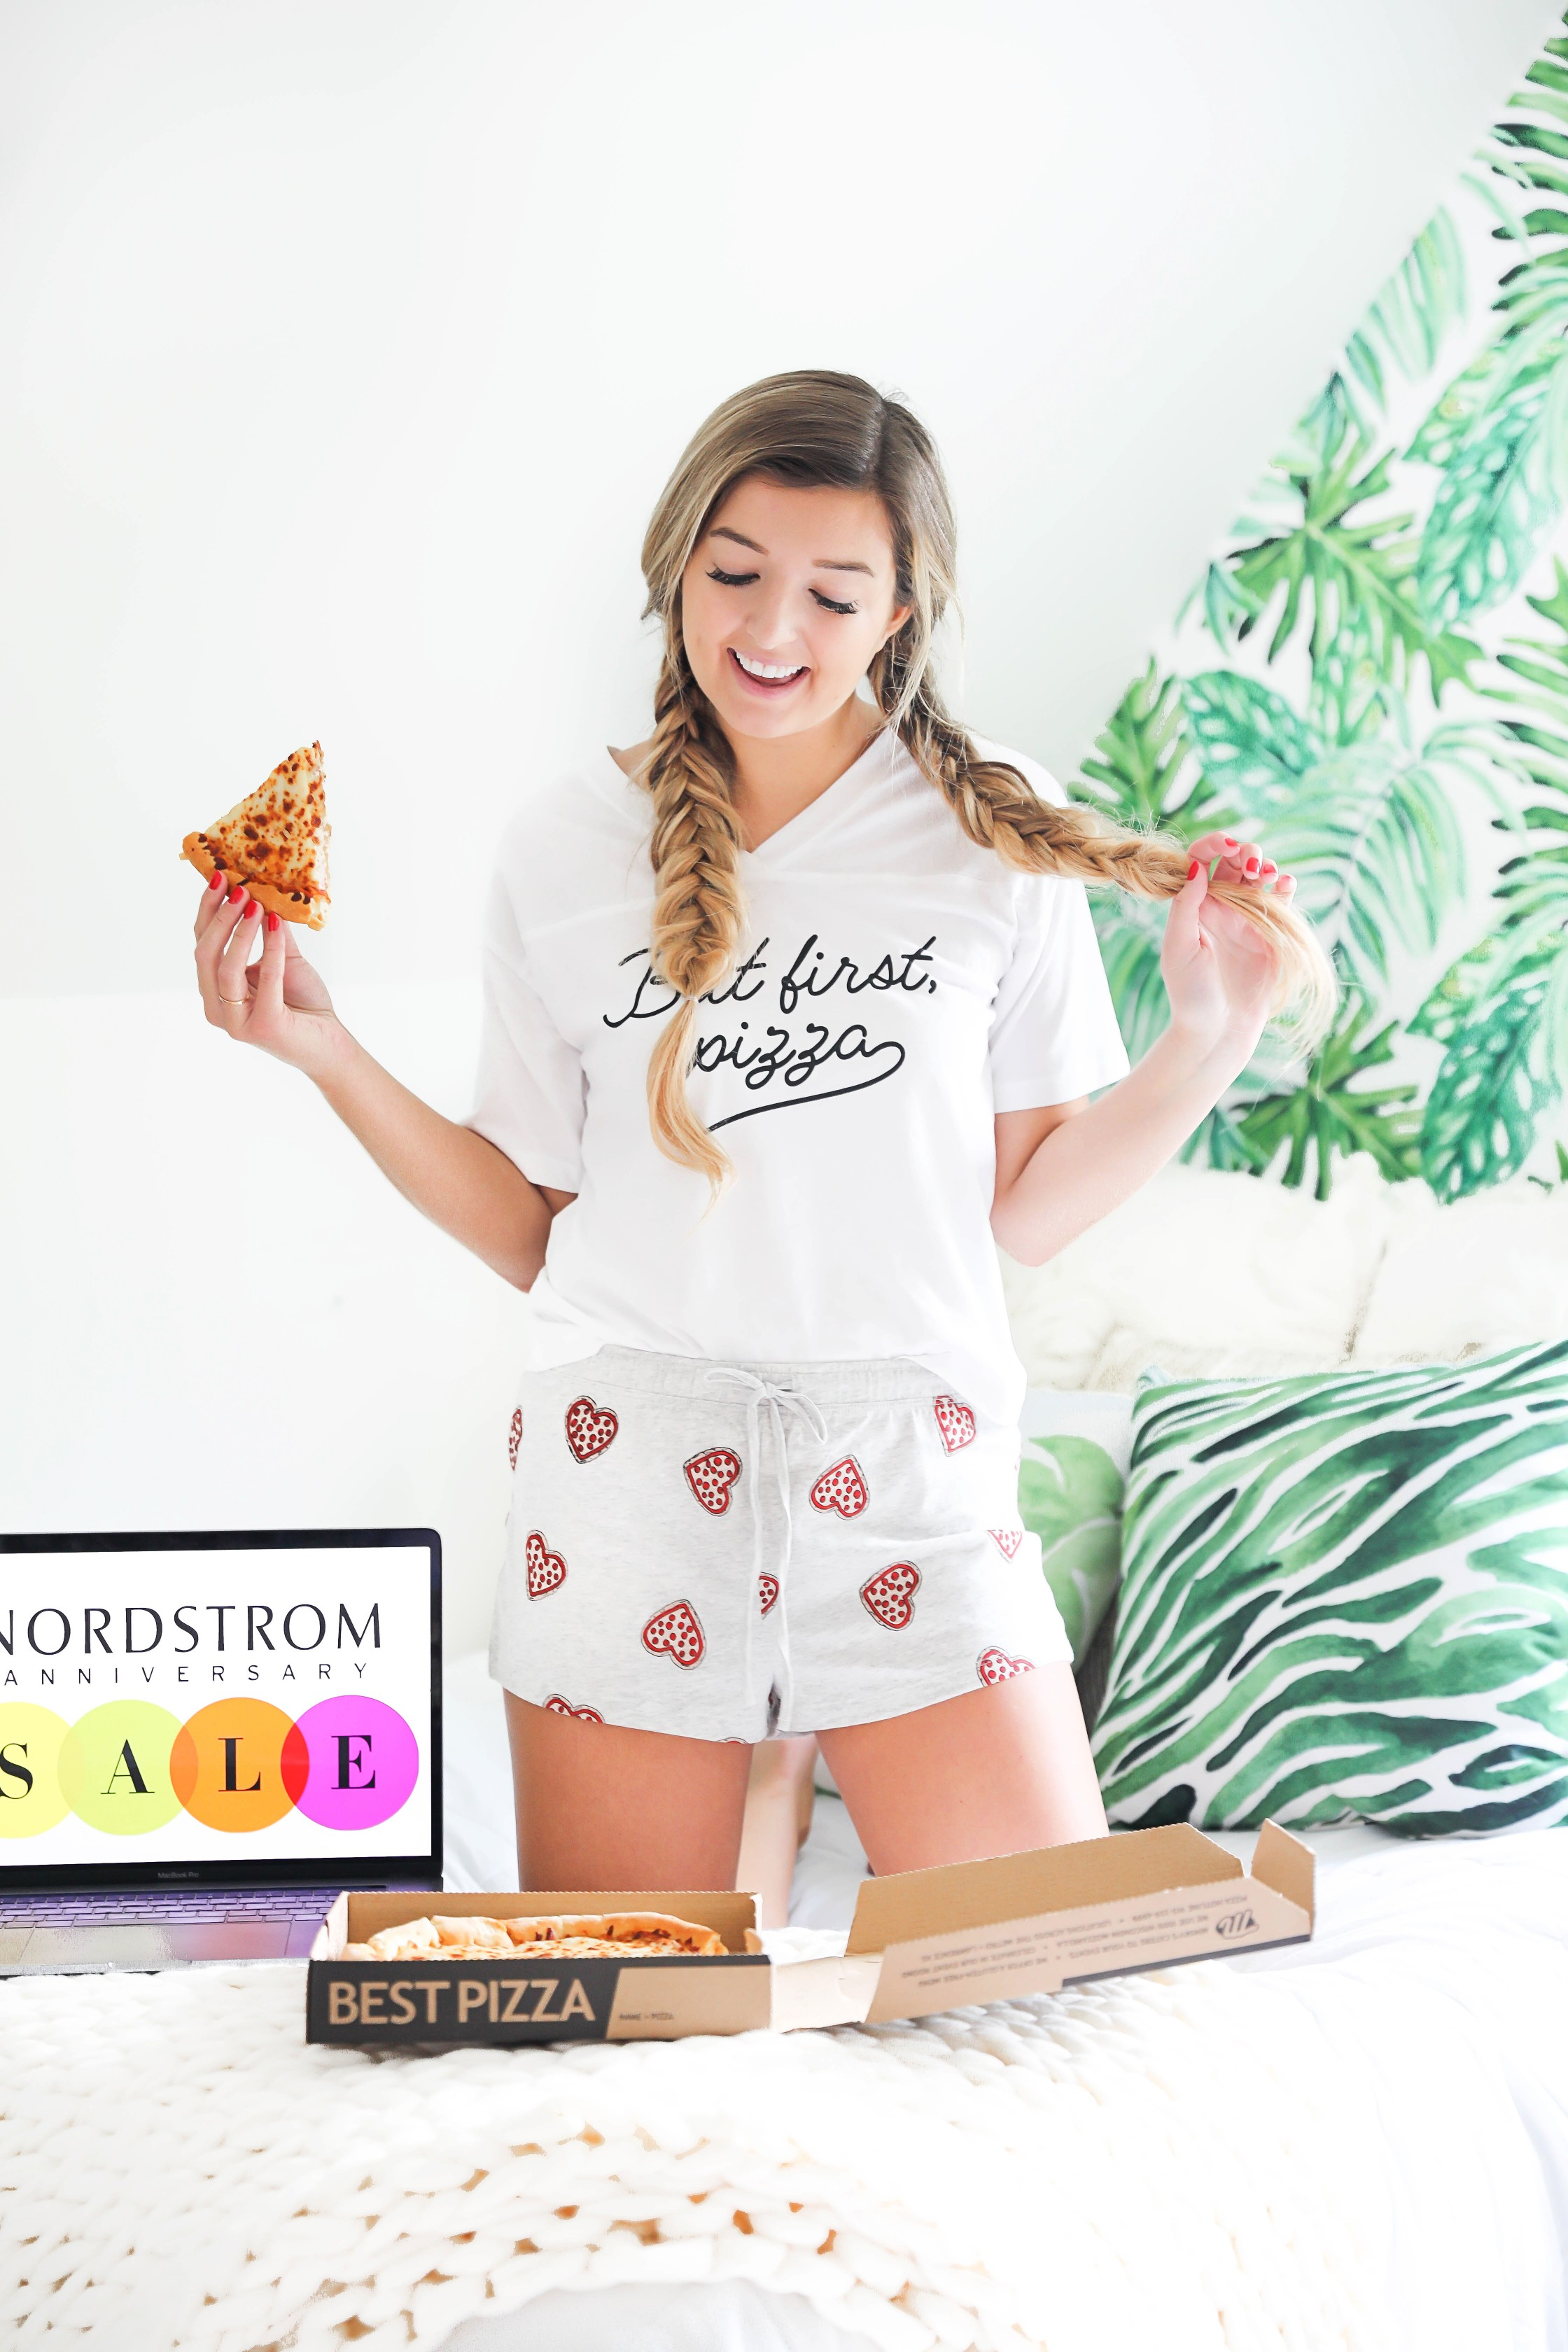 Nordstrom Anniversary Sale 2018! The biggest sale of the year! Everything you need to know about this year's sale! Adorable pizza pajamas! Nothing like a pizza and pj party while shopping! Details on fashion blog daily dose of charm by lauren lindmark